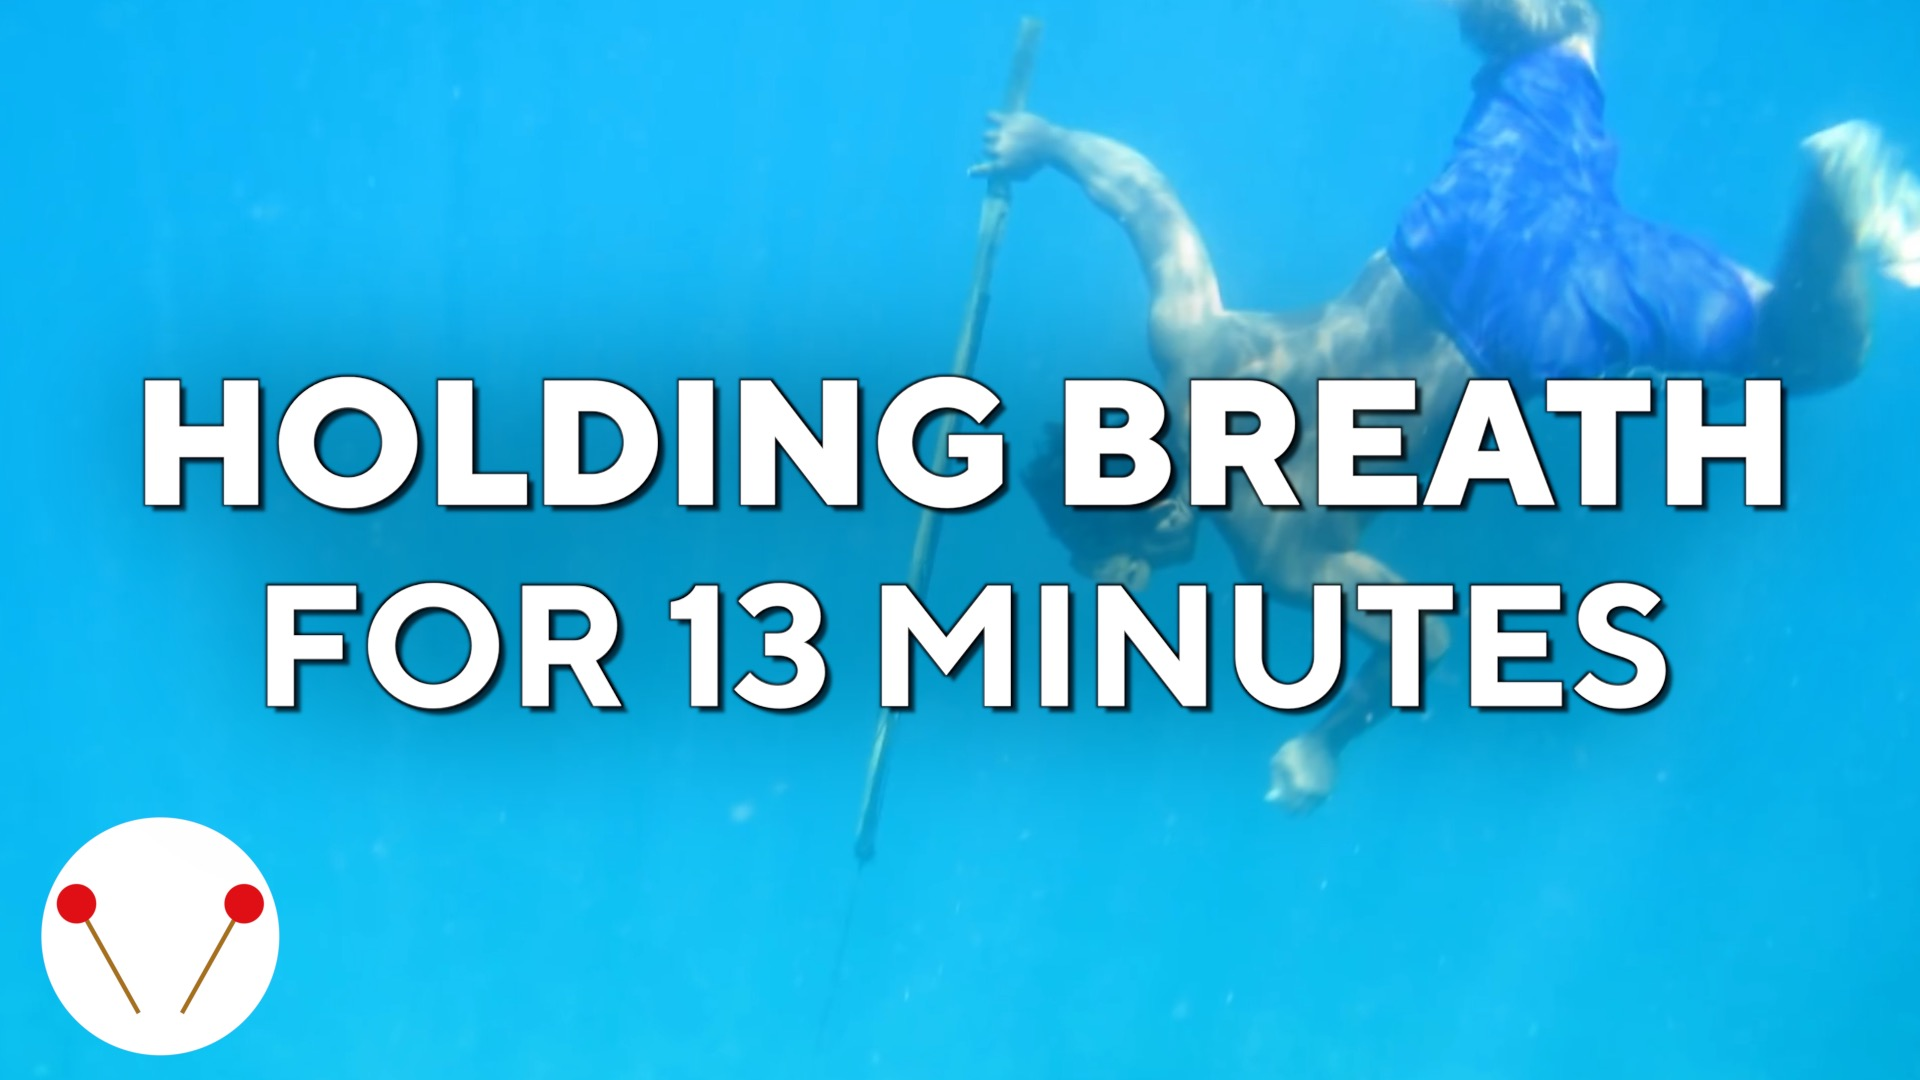 Genetic mutation lets this man hold breath underwater for 13 minutes